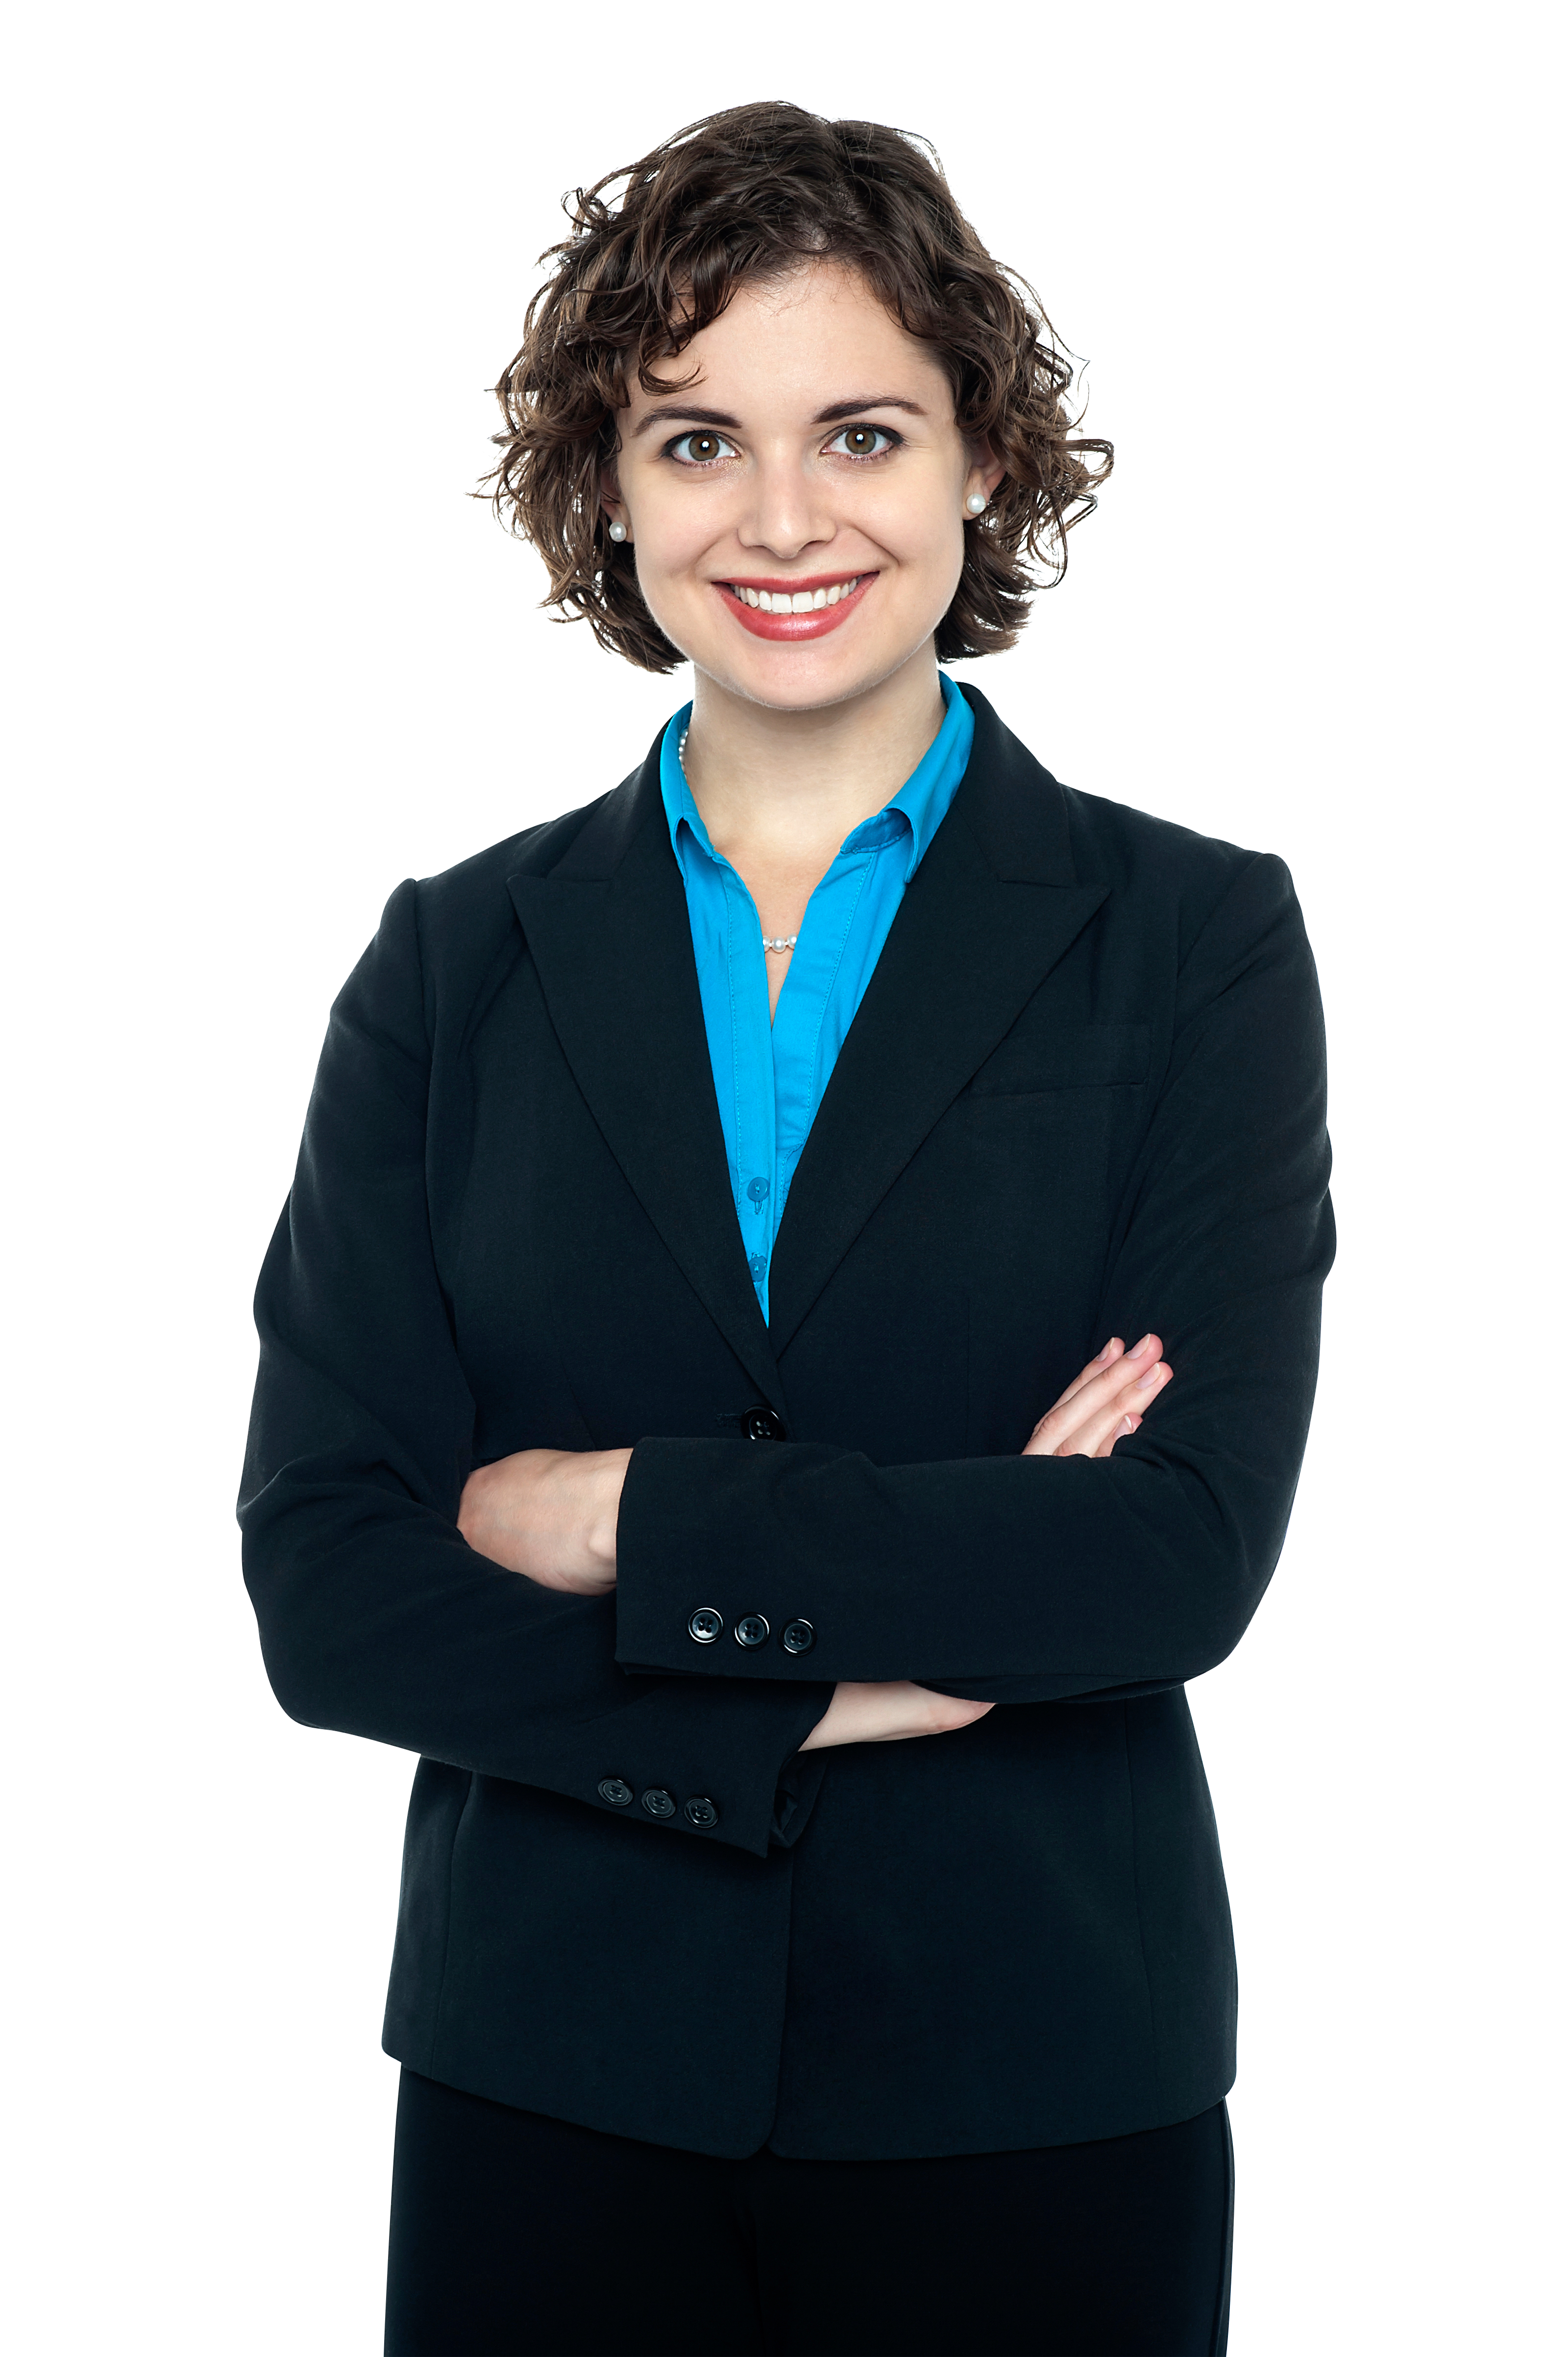 Business Women HD Free PNG Image - Business HD PNG